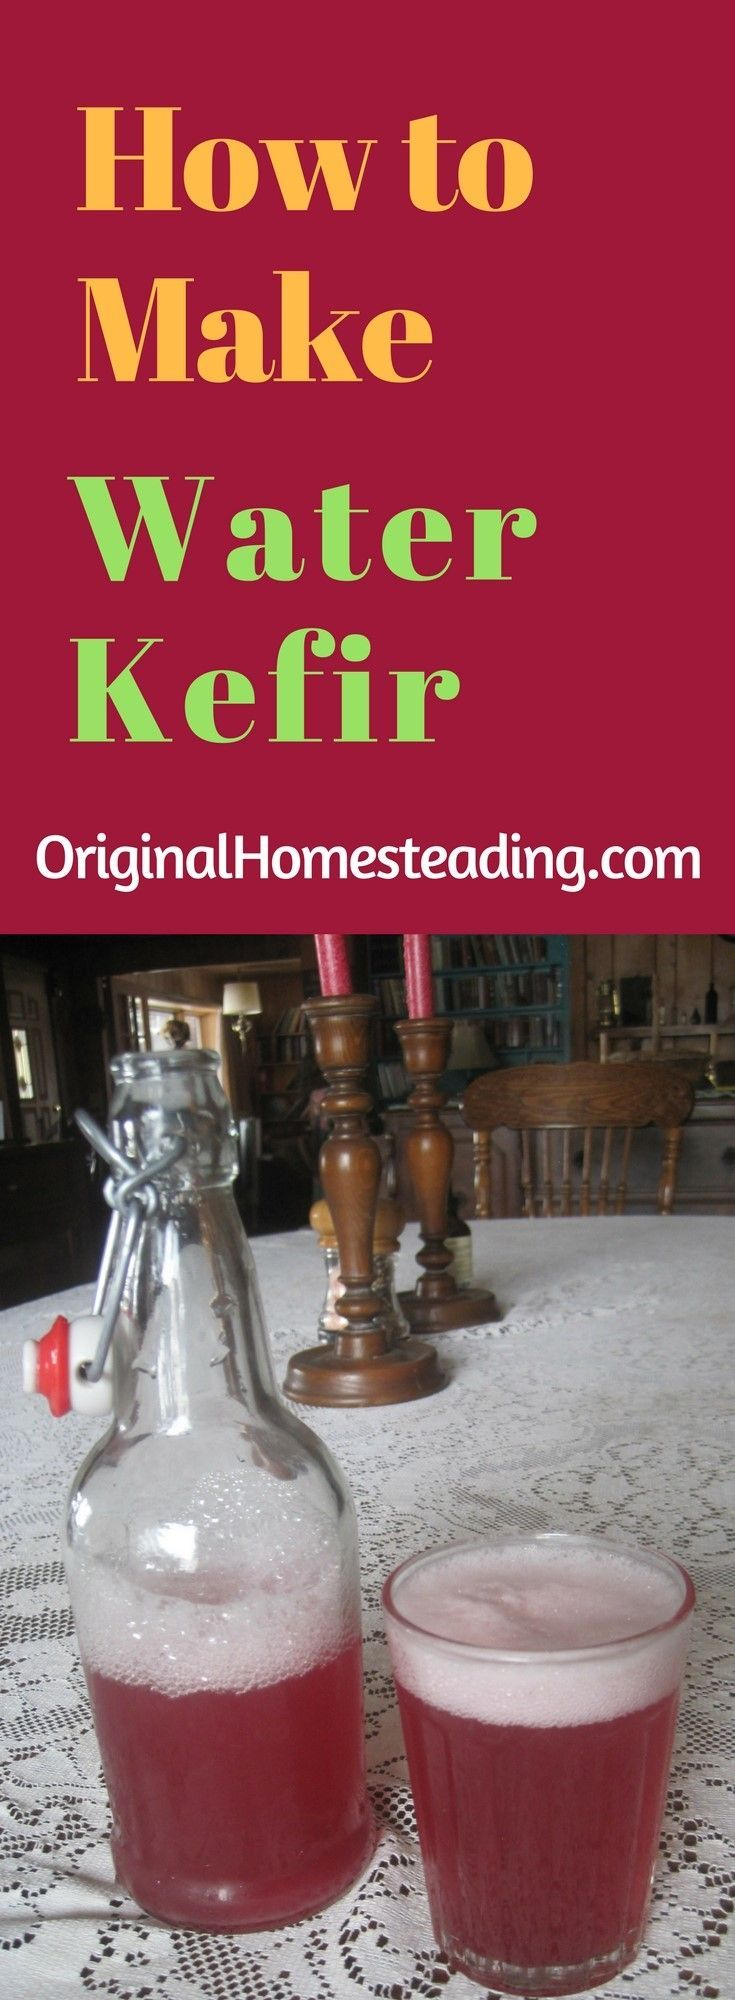 Learn to Make Your Own Water Kefir!!! This probiotic rich drink is so easy to make. By making your own, you can drink it everyday for overall Healthy Benefits!!!